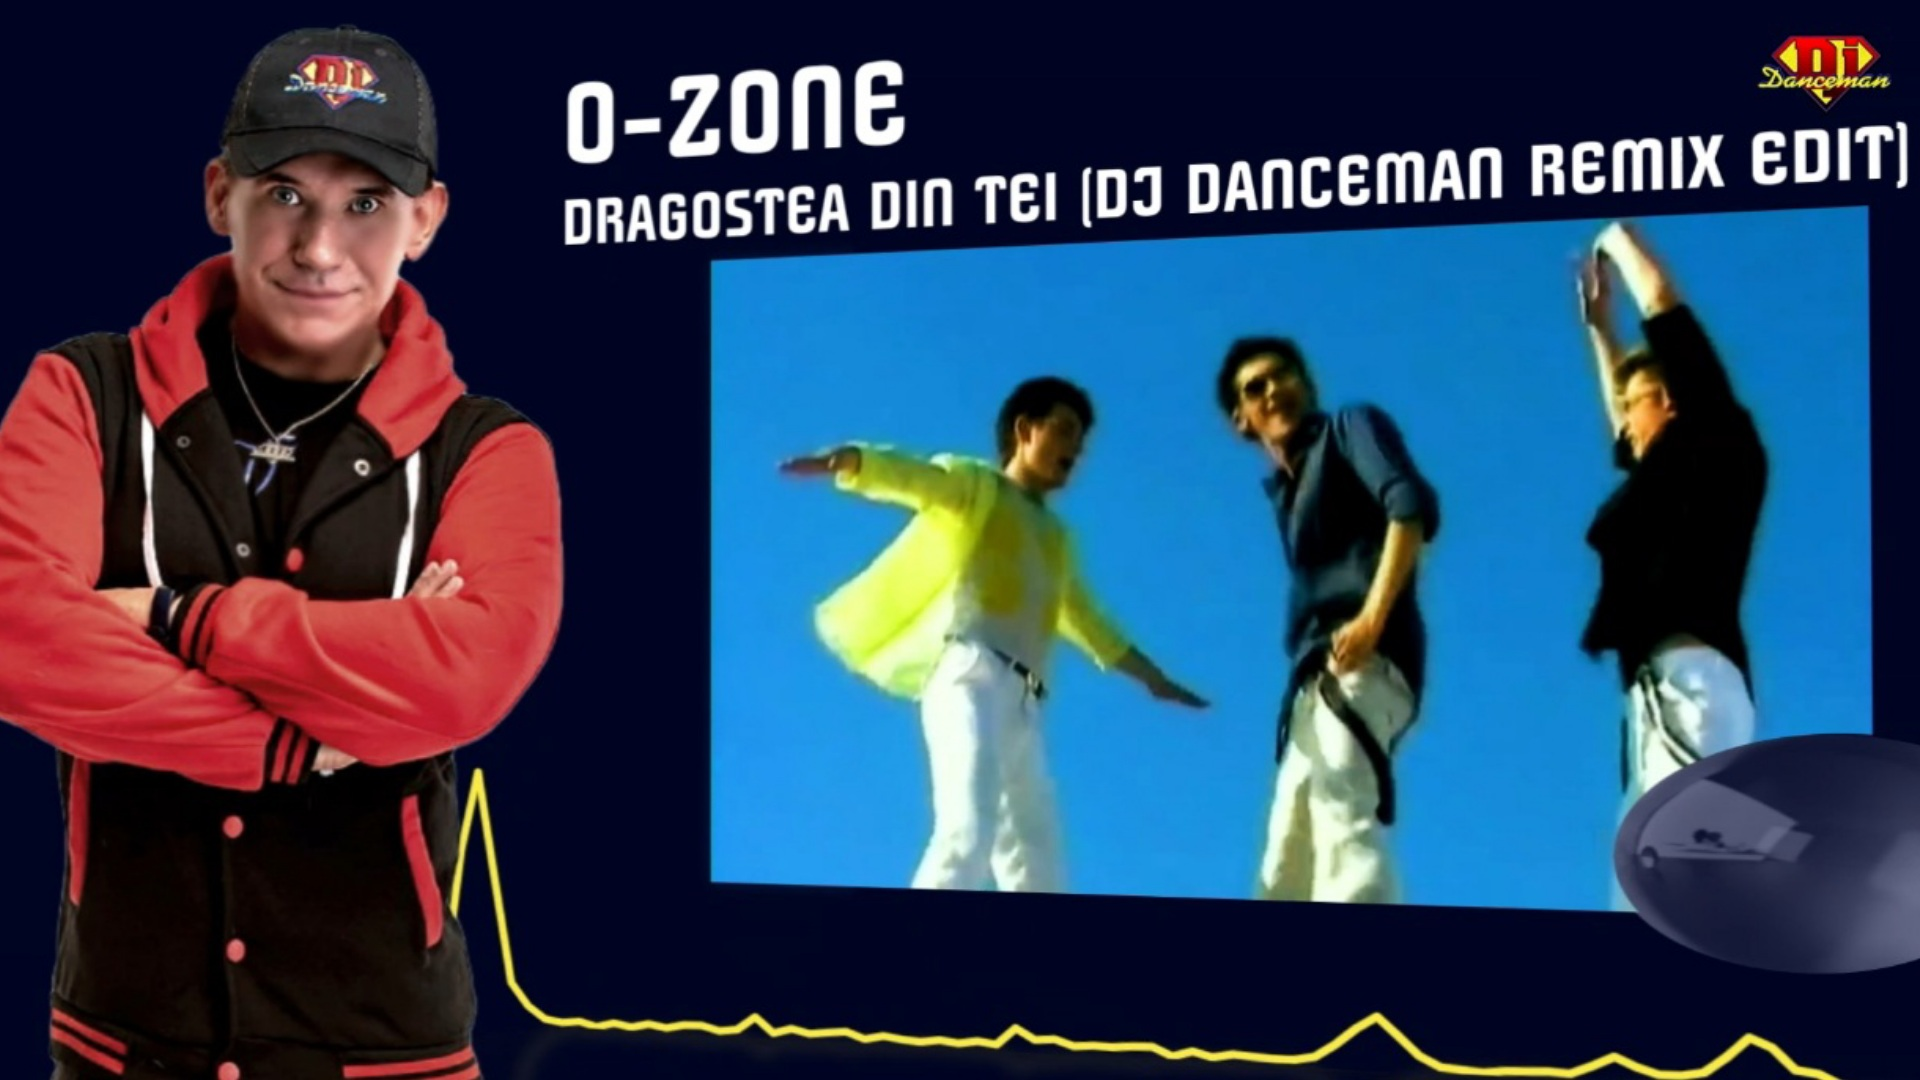 O-Zone - Dragostea Din Tei (Dj Danceman Remix)